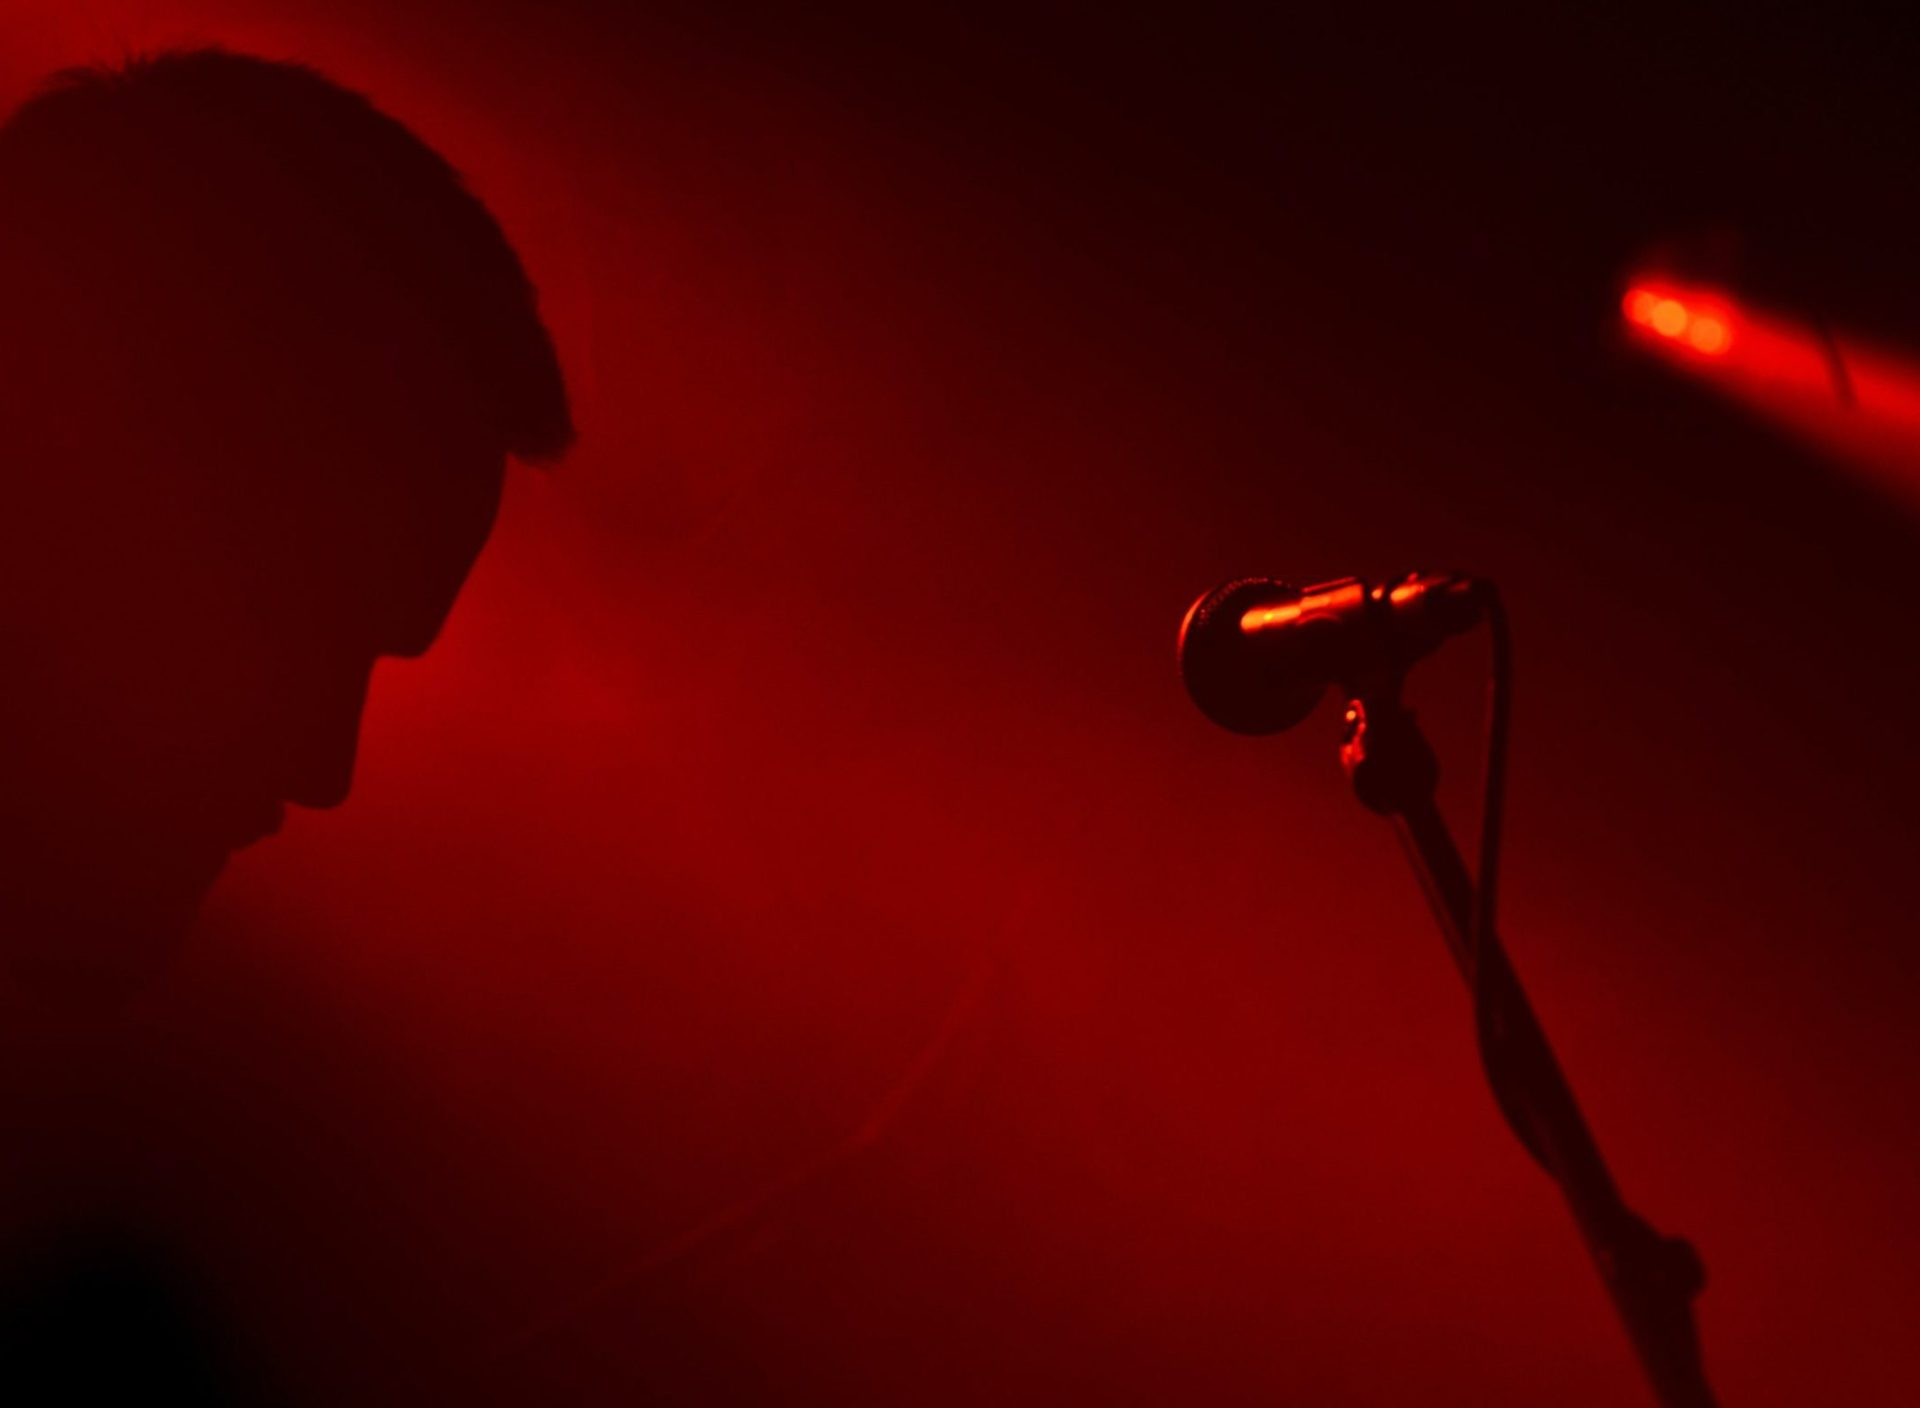 Singer or speaker on the stage in red light